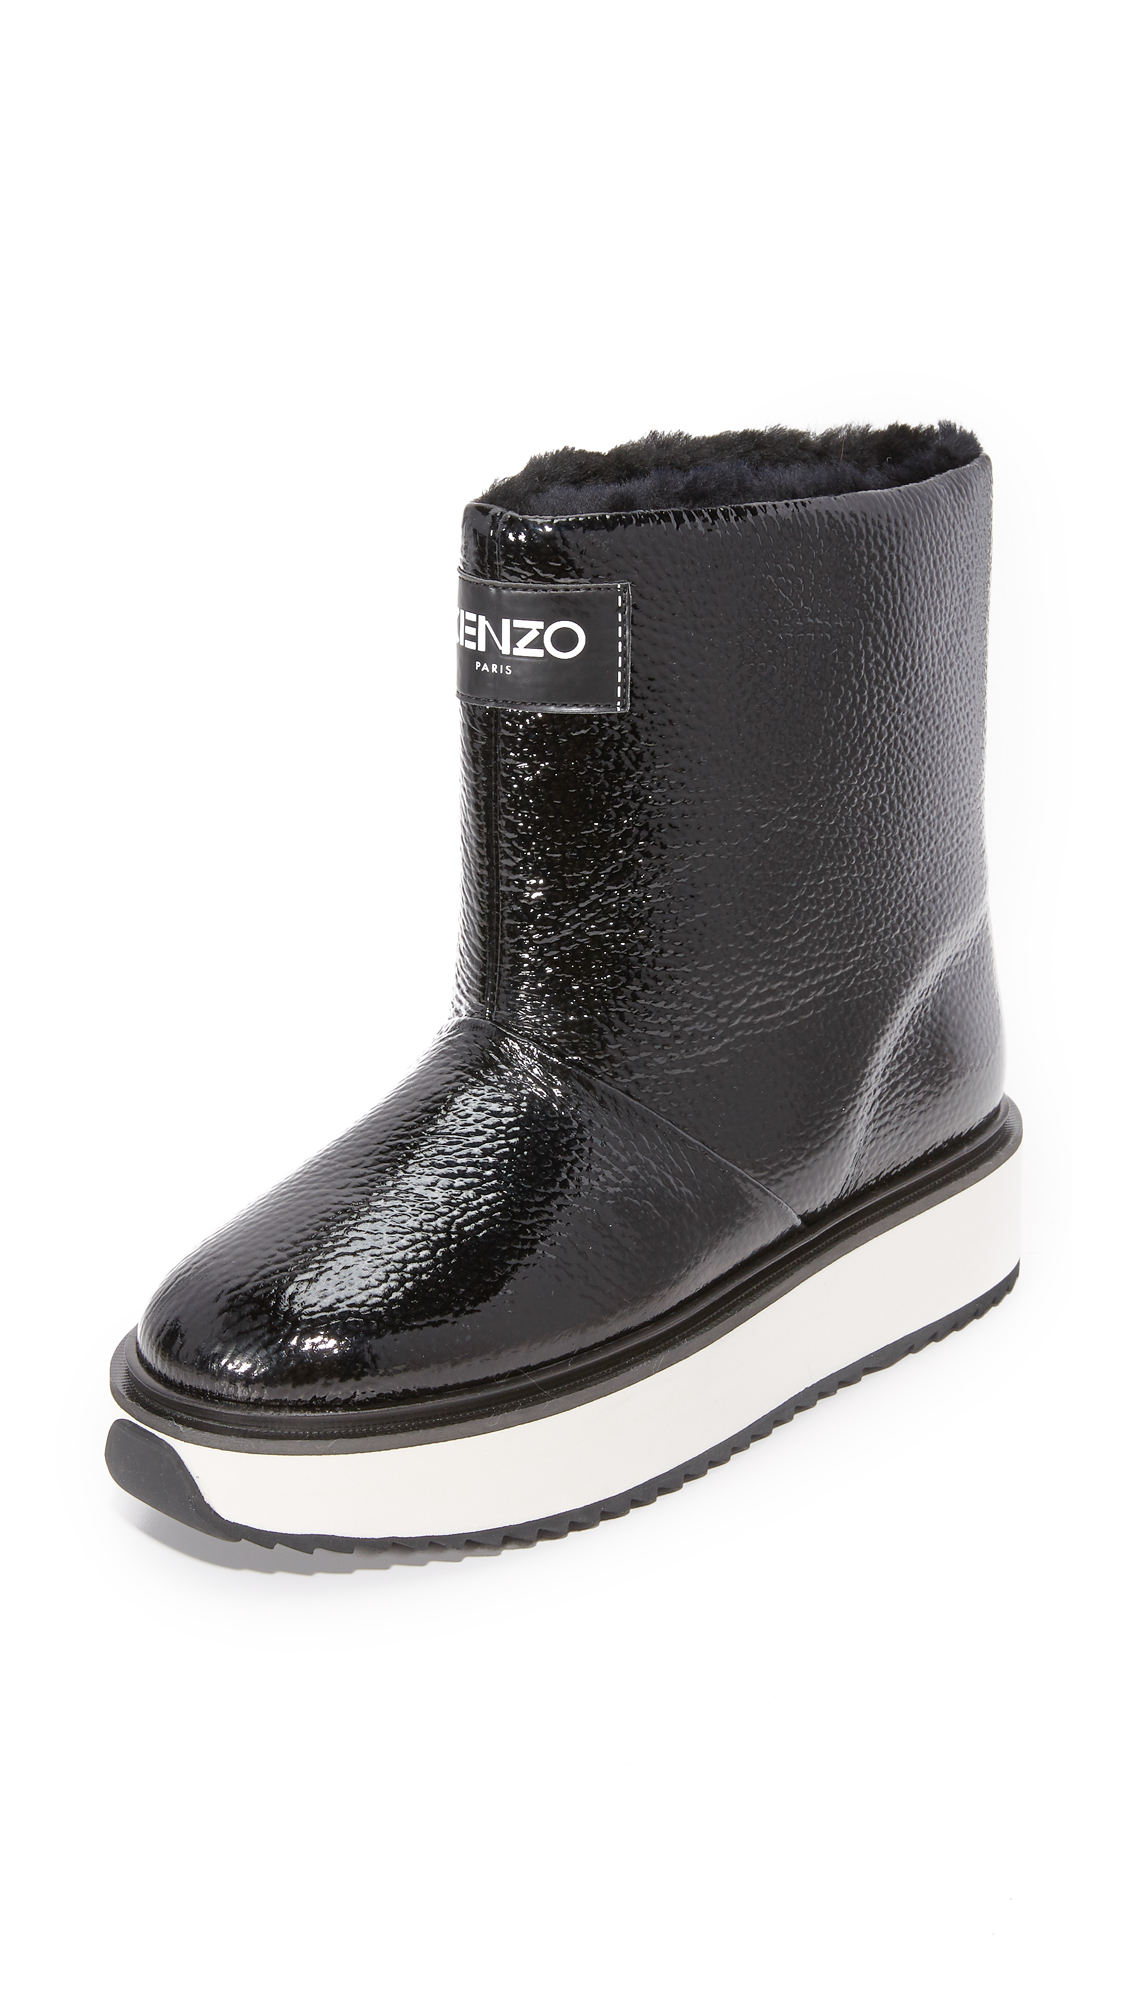 KENZO Snow Boots | SHOPBOP